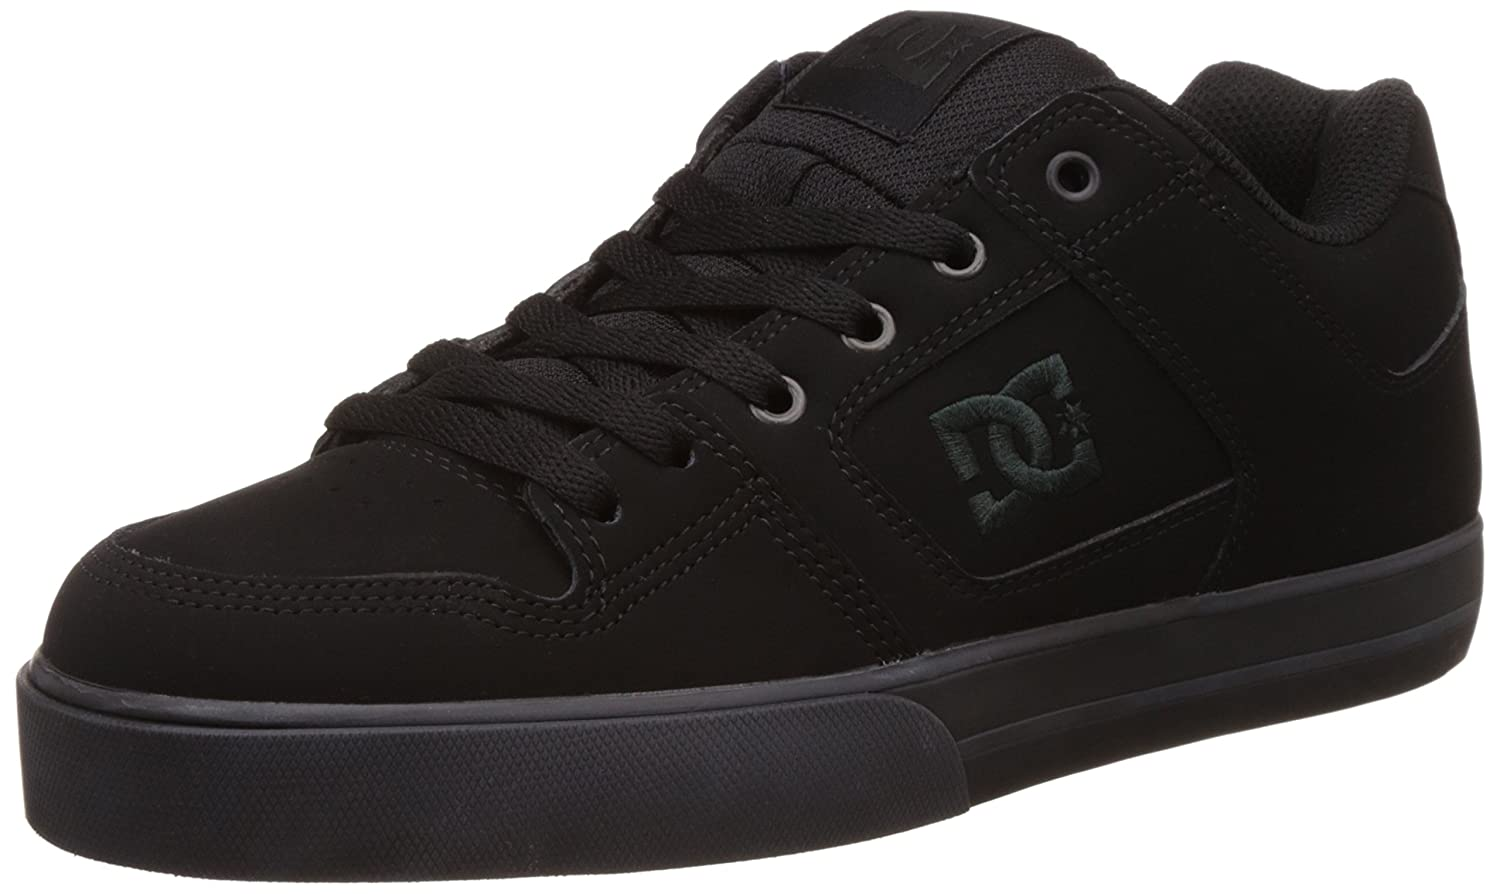 bbbf9e949264e8 Amazon.com  DC Men s Pure Skate Shoe